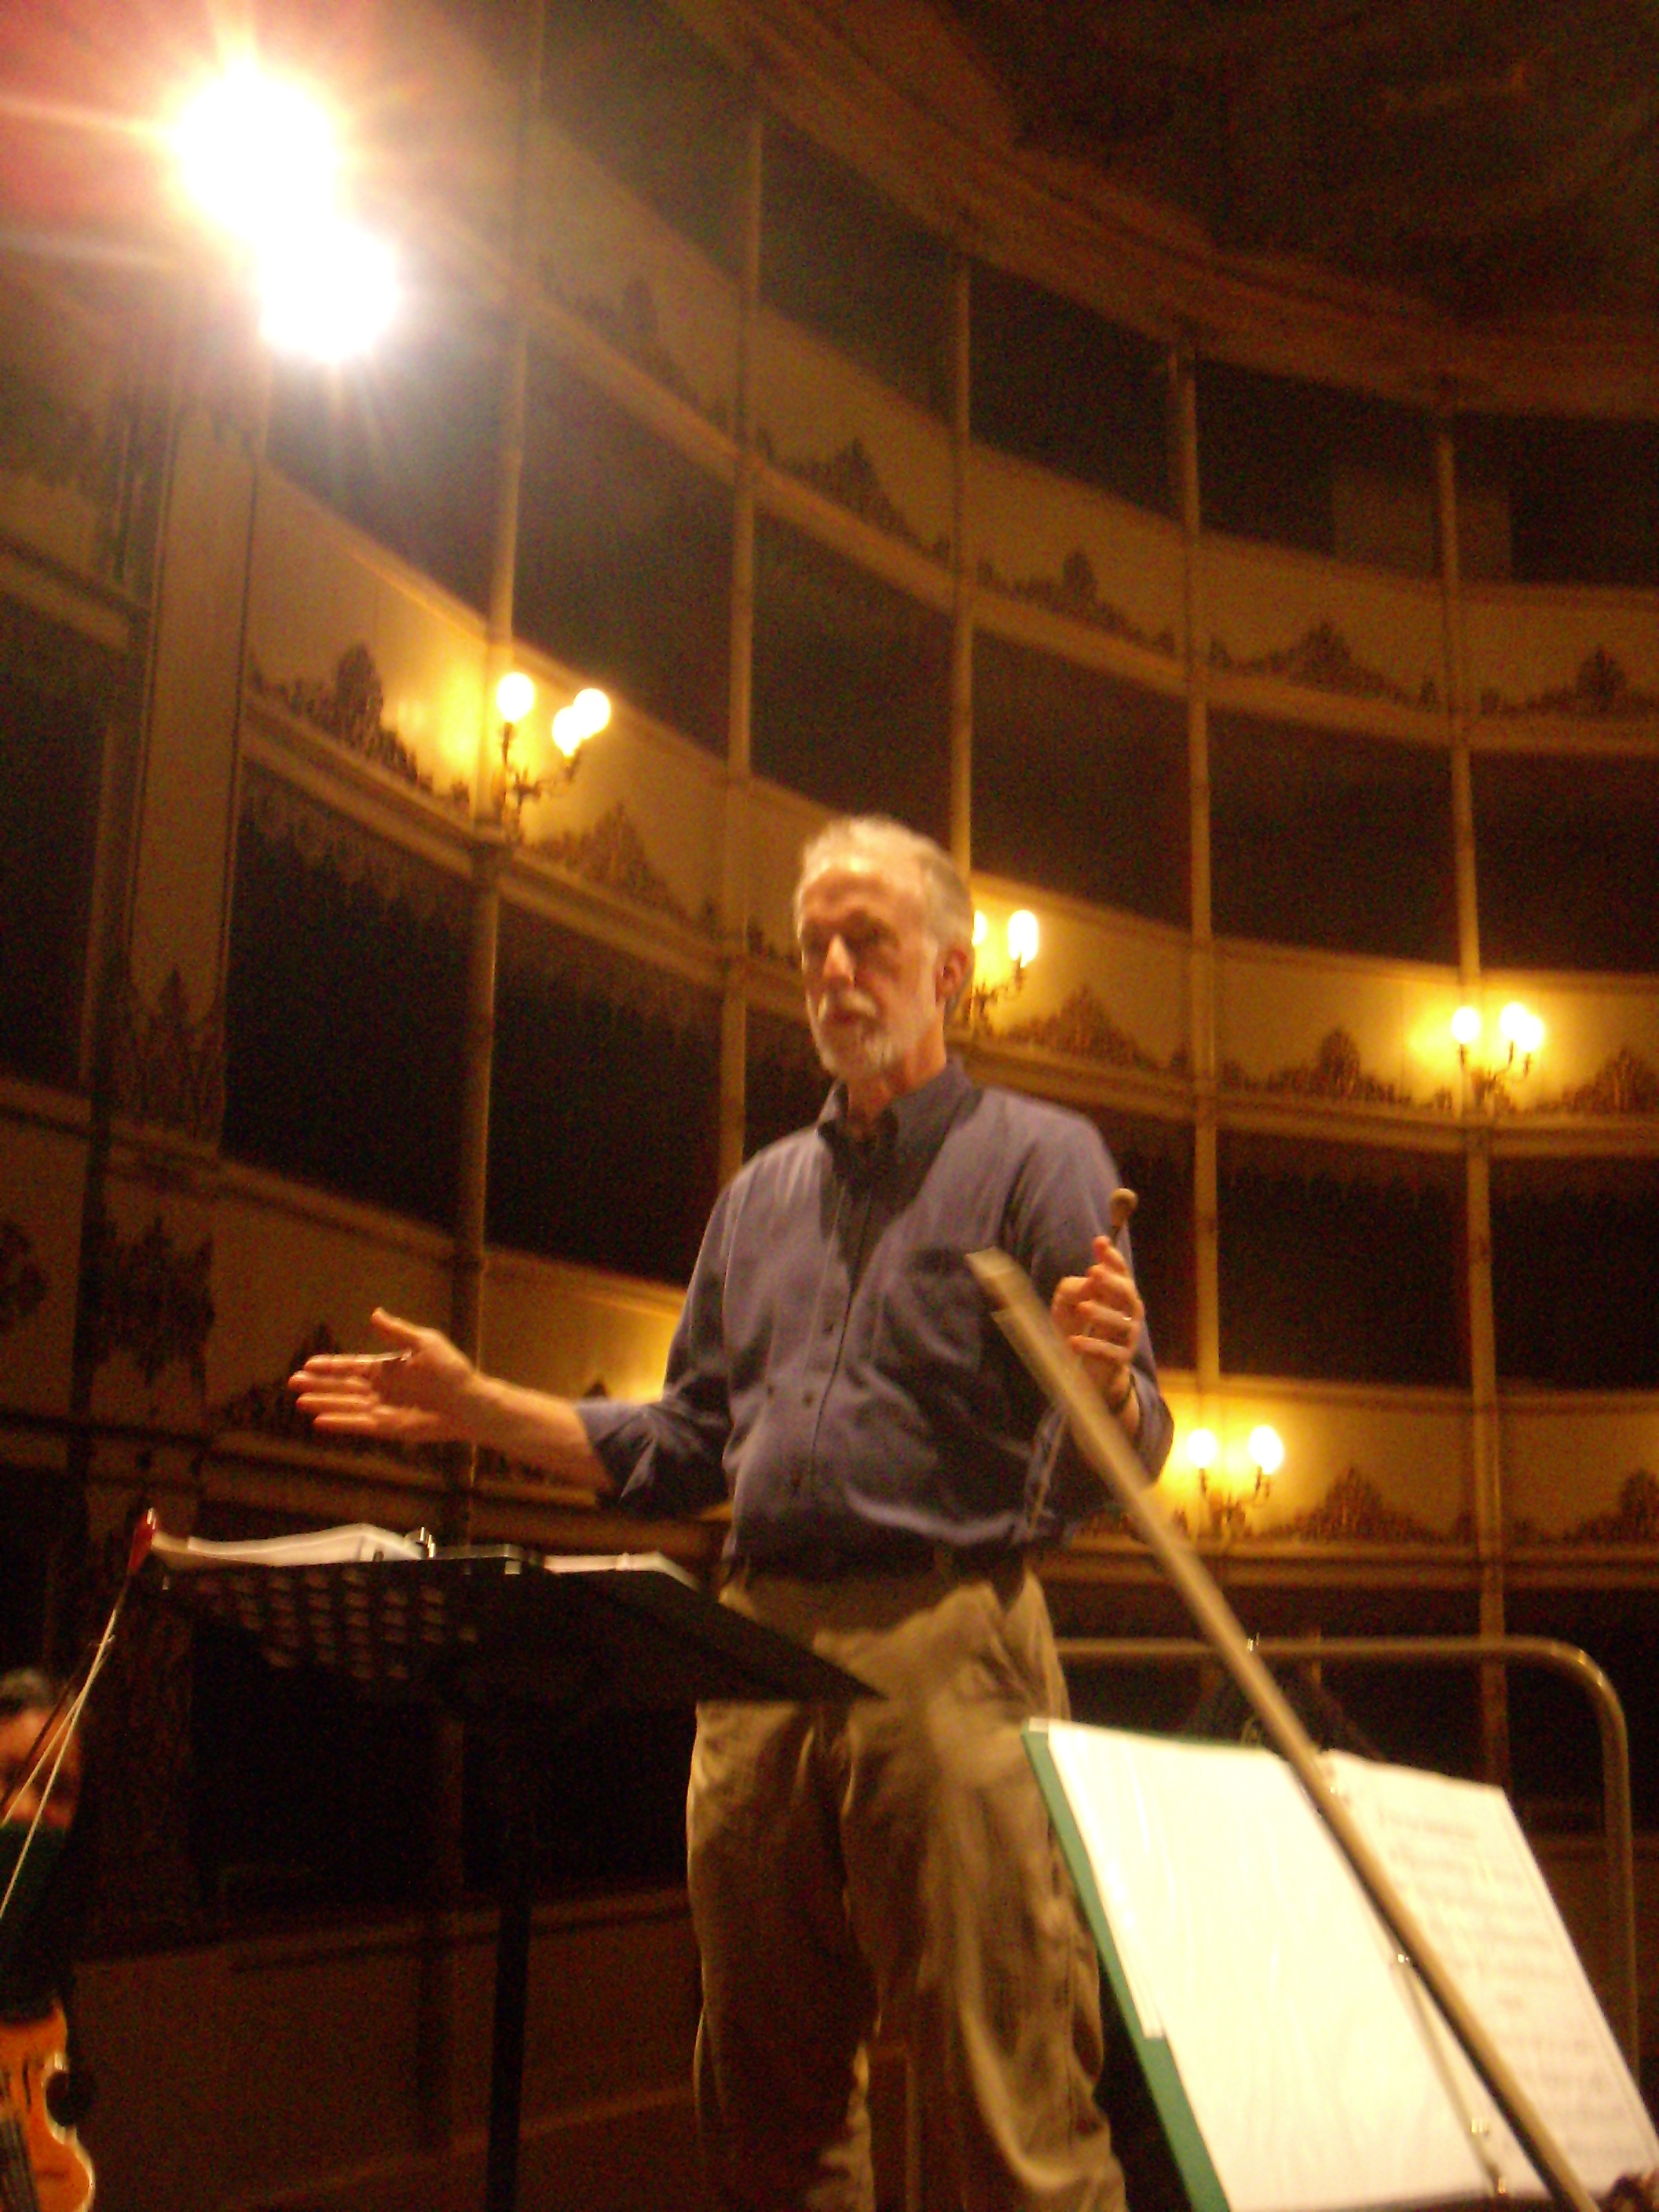 Maestro Chaffee preparing the SHS Tour Orchestra for performance near Cremona Italy 2008